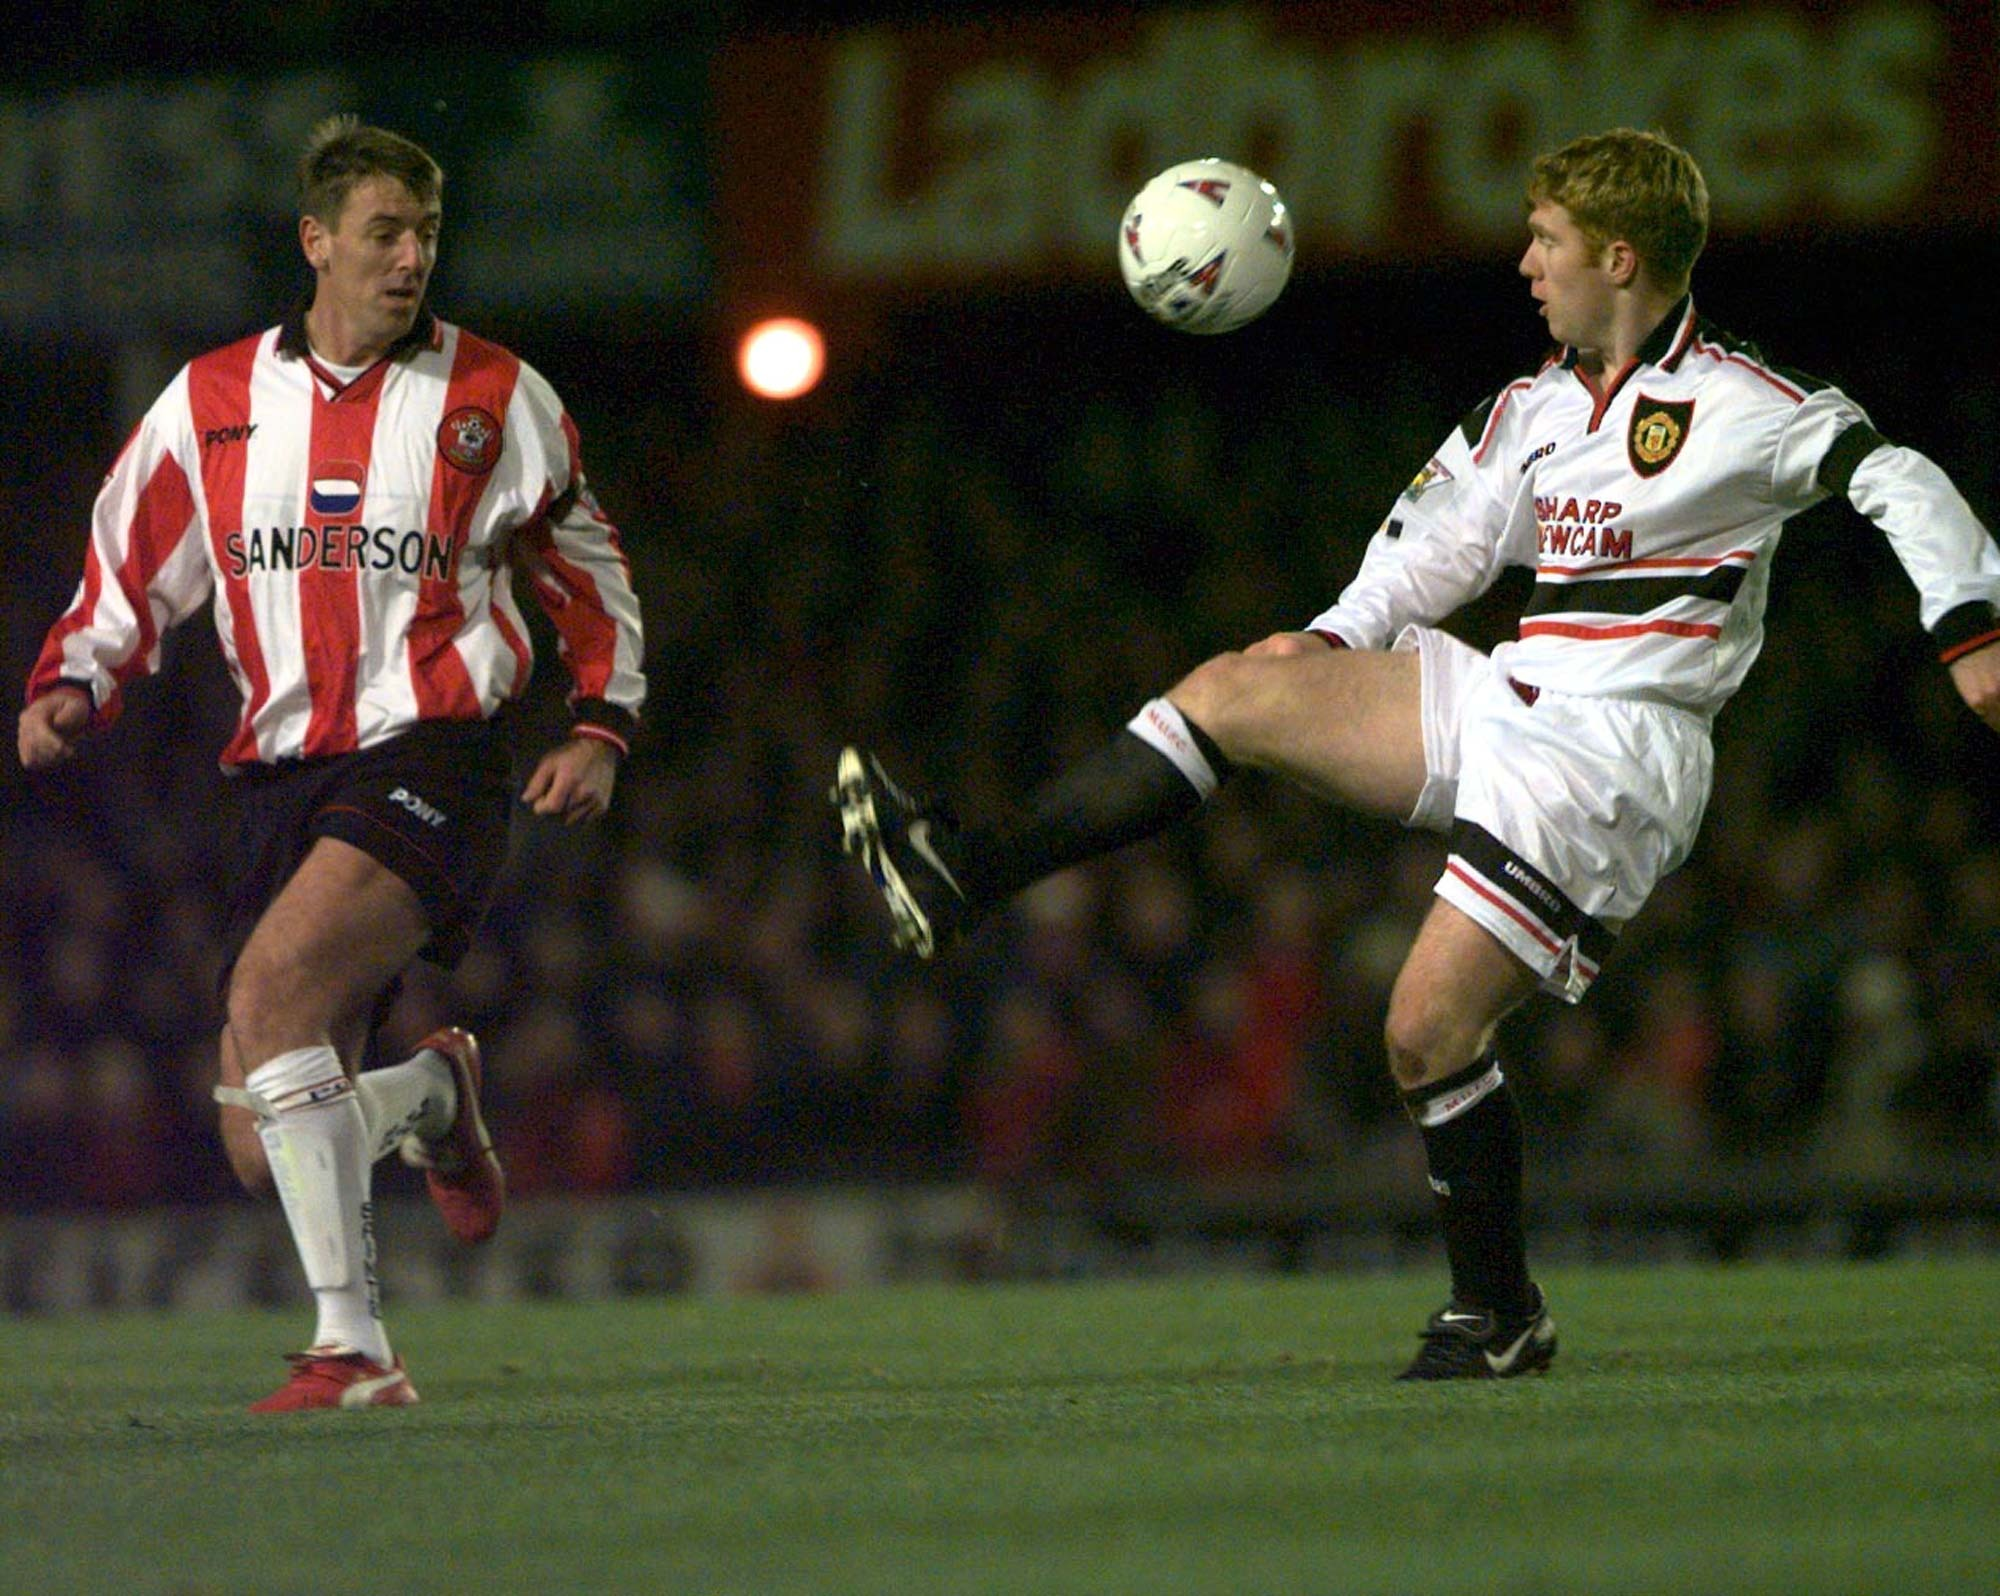 Le Tissier gives his view on Saints